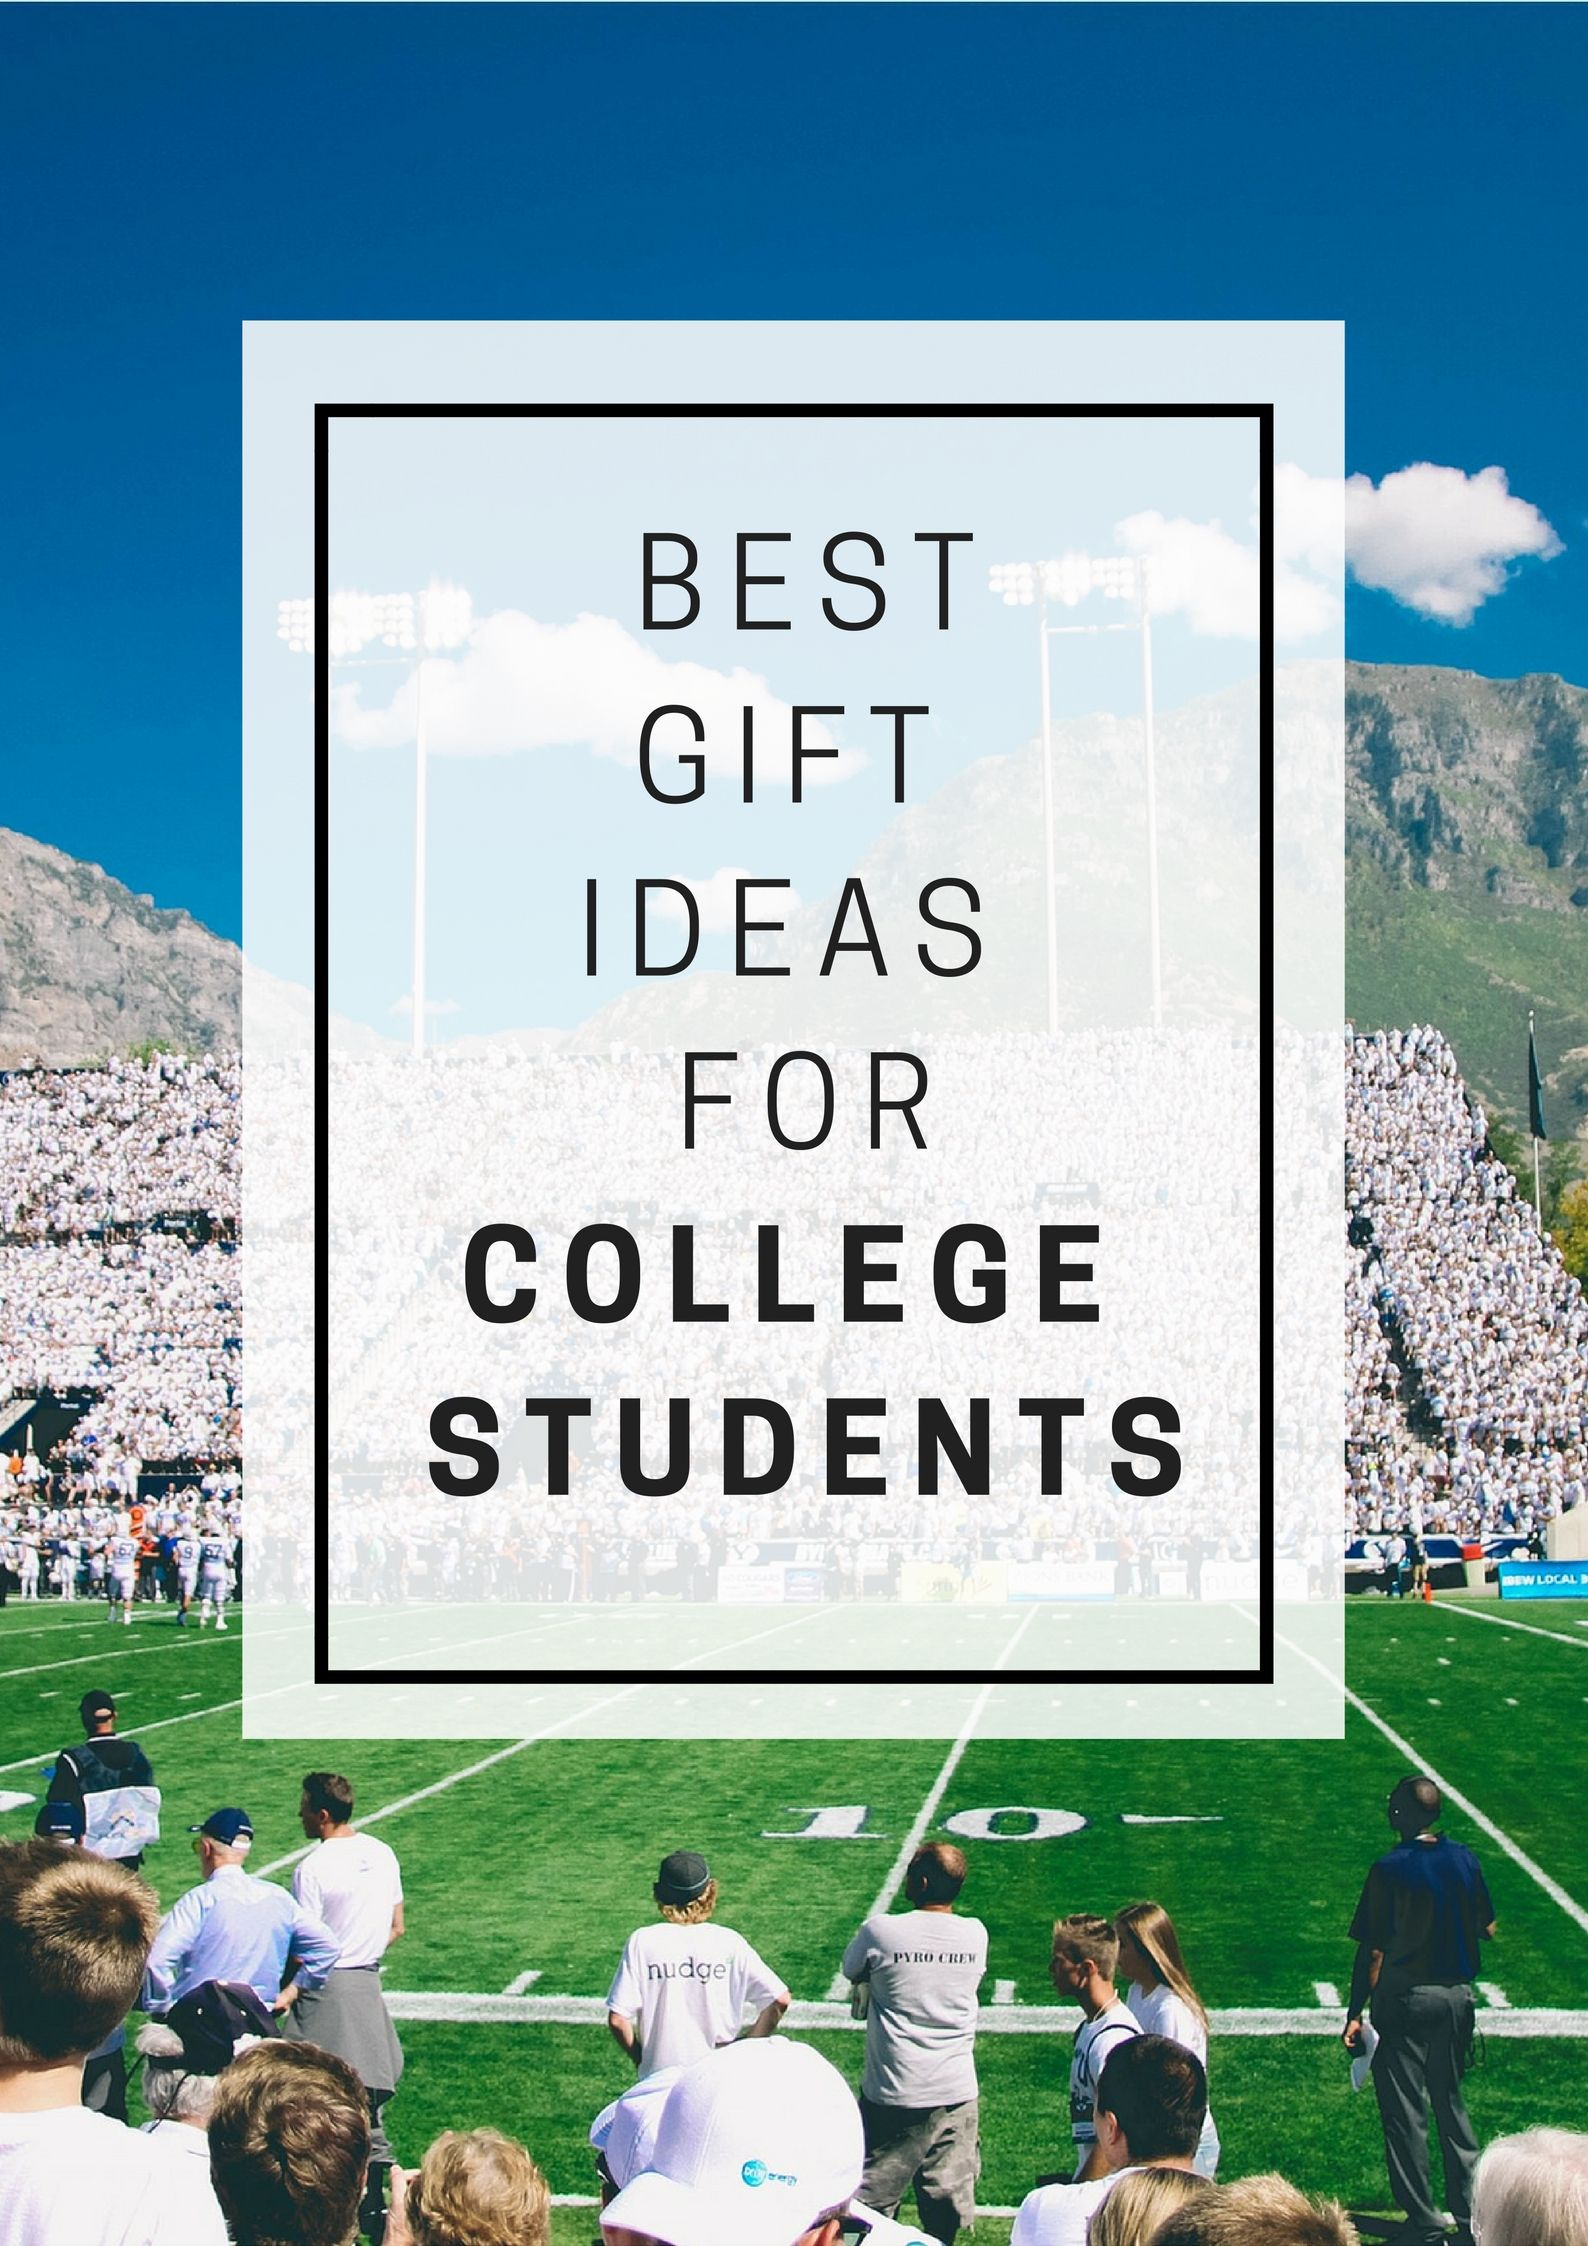 Best Gift List Of Ideas For College Students From Electronics And Sports Gifts To Favorite Snacks Care Packages